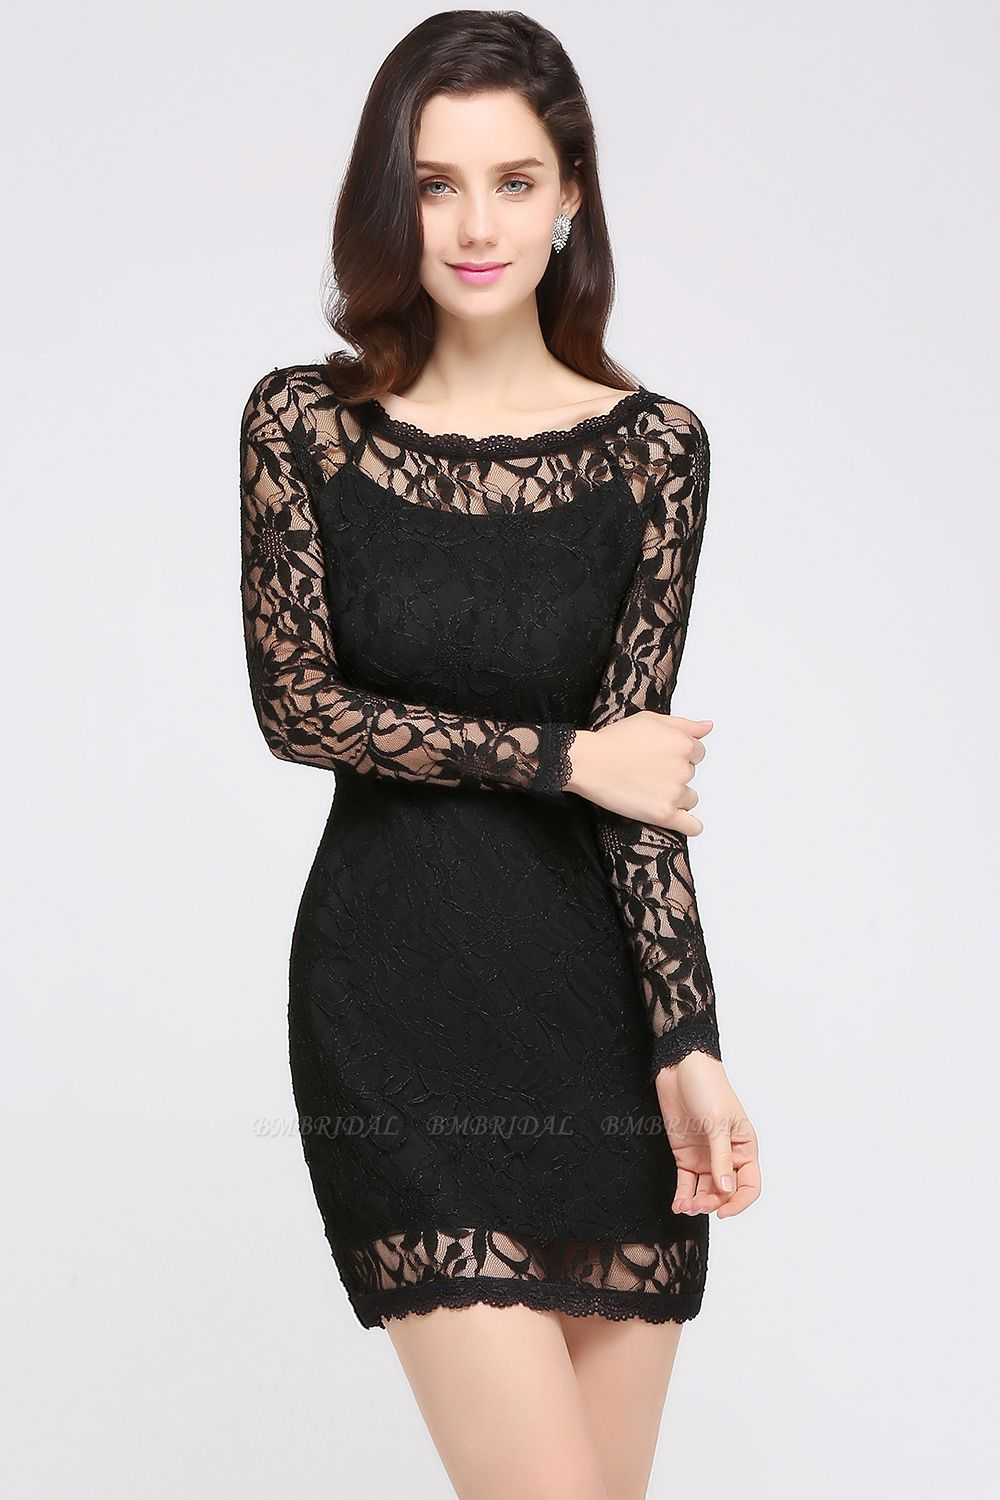 BMbridal Sexy Black Lace Long Sleeves Mermaid Prom Dress